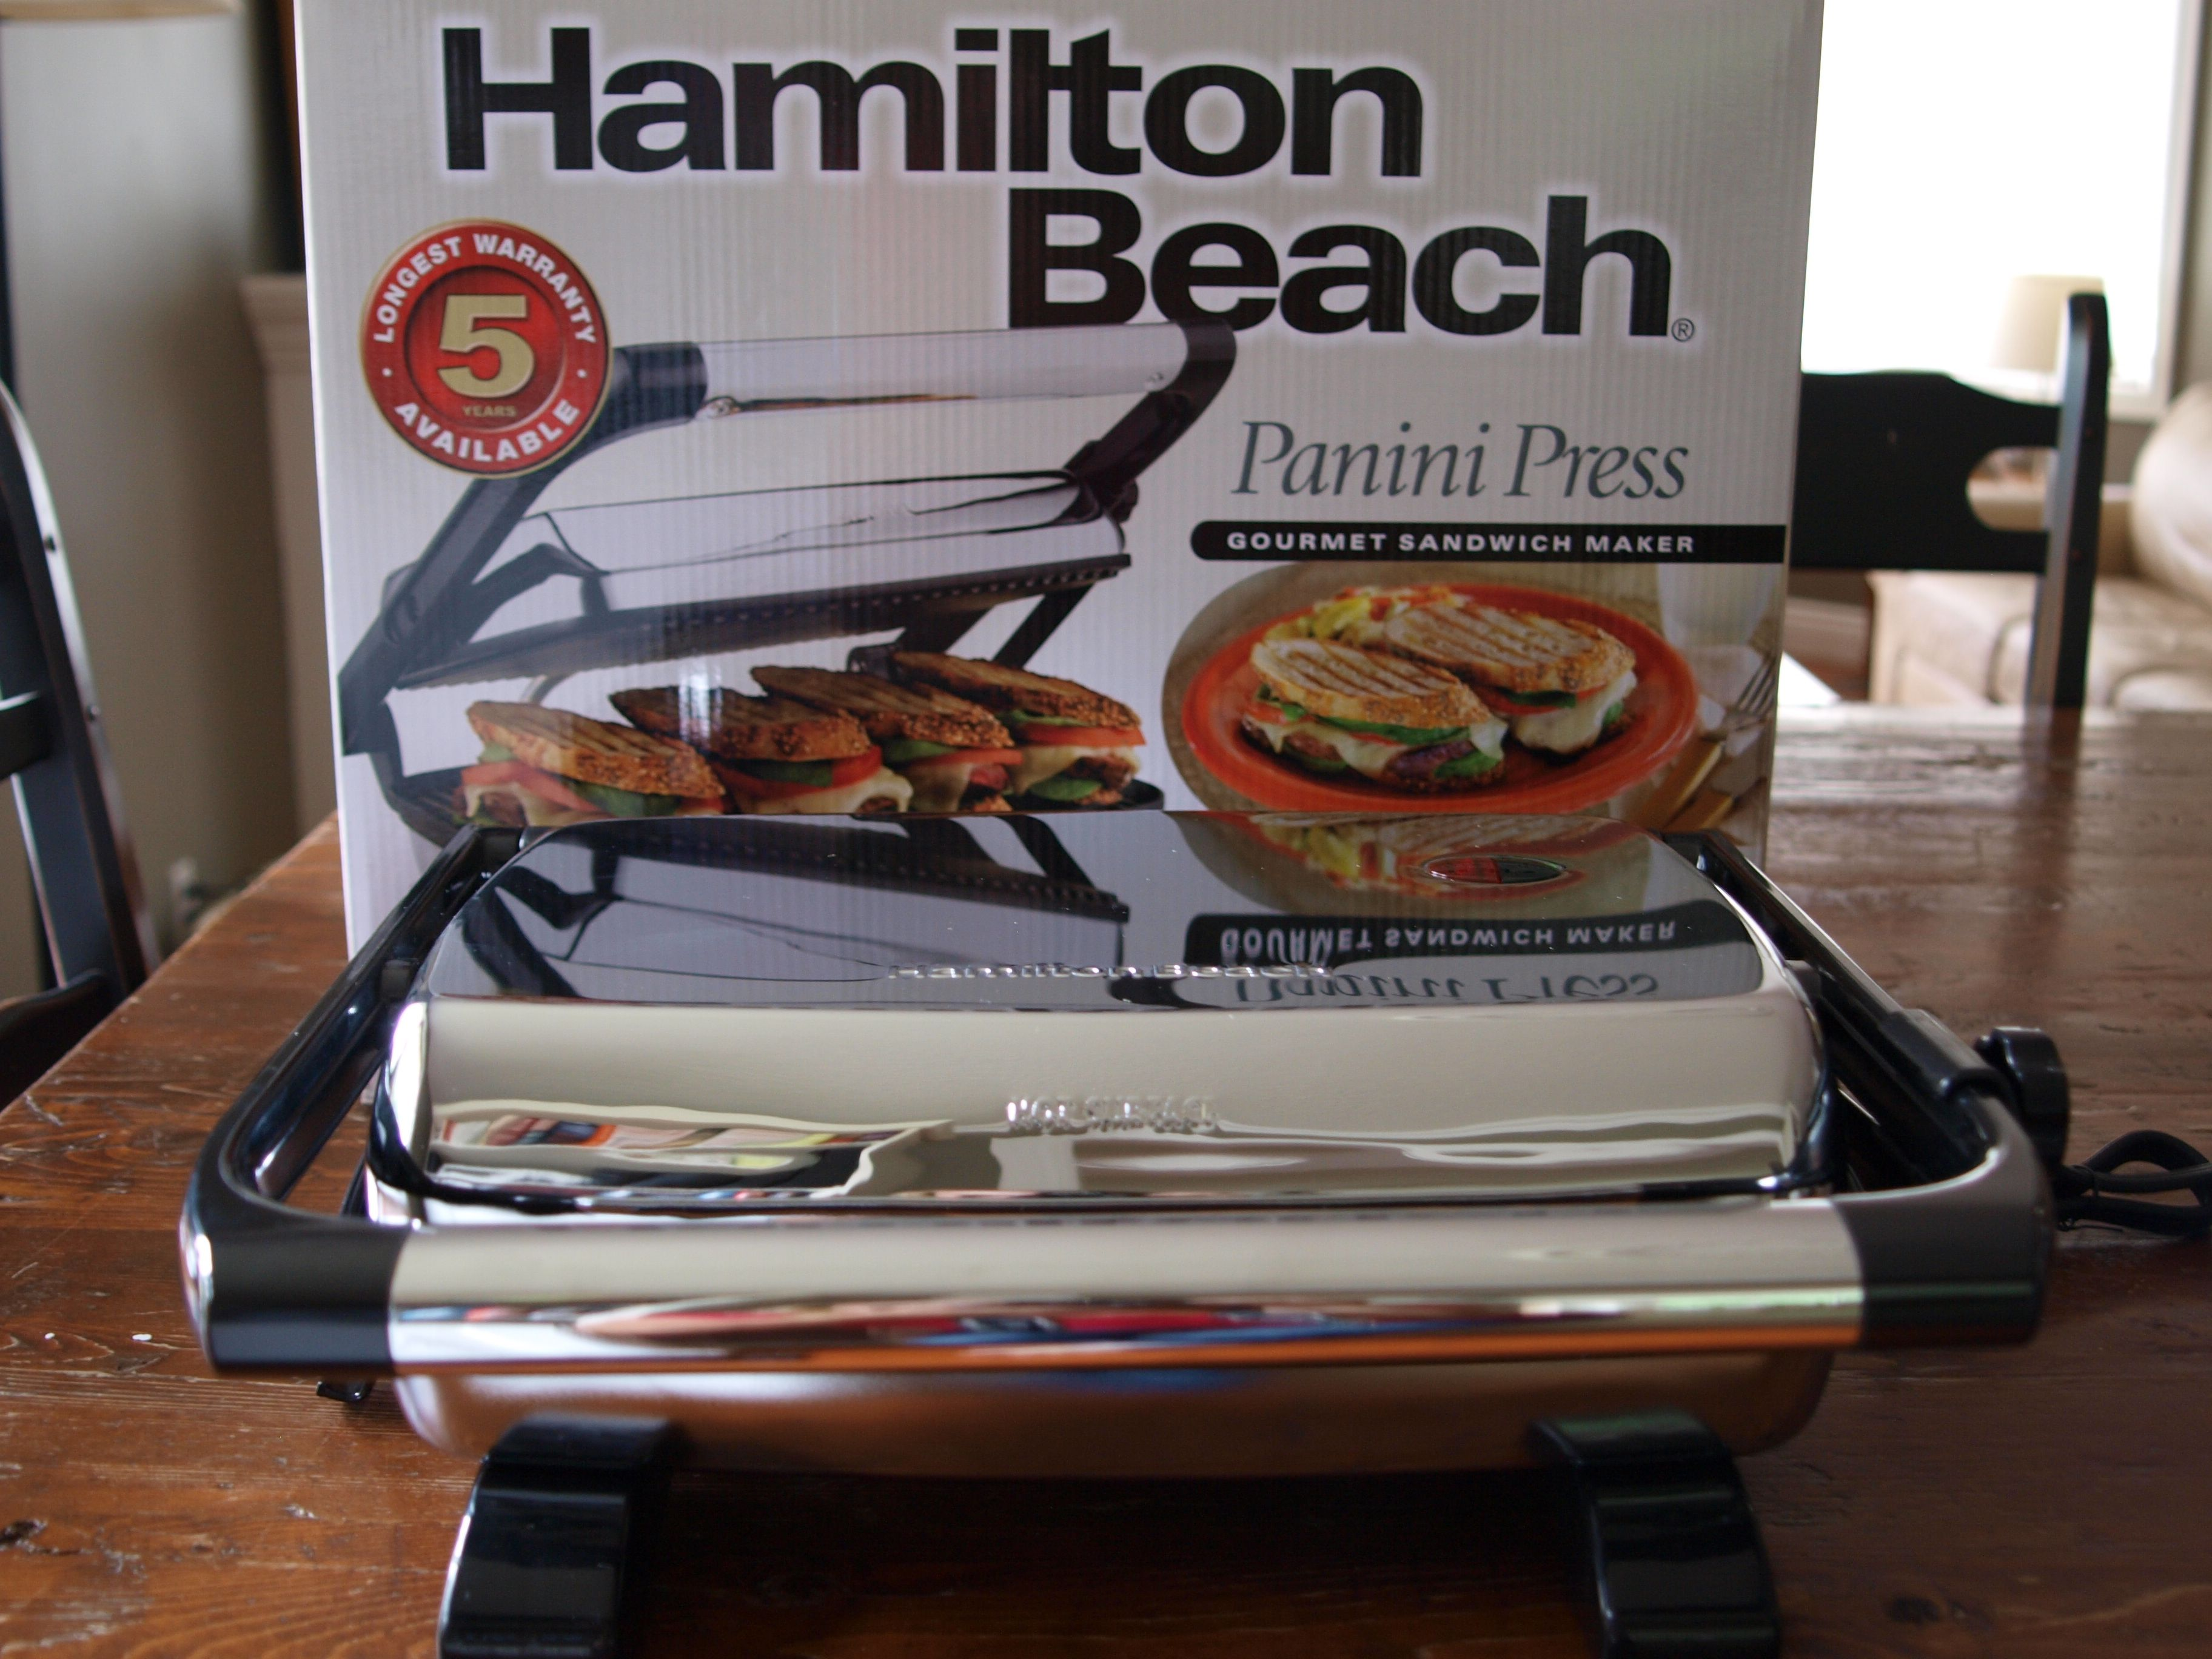 hamilton beach panini press giveaway life in pleasantville you can enter as many times as you like each combination must be submitted separately though please leave me your twitter handle if you have one